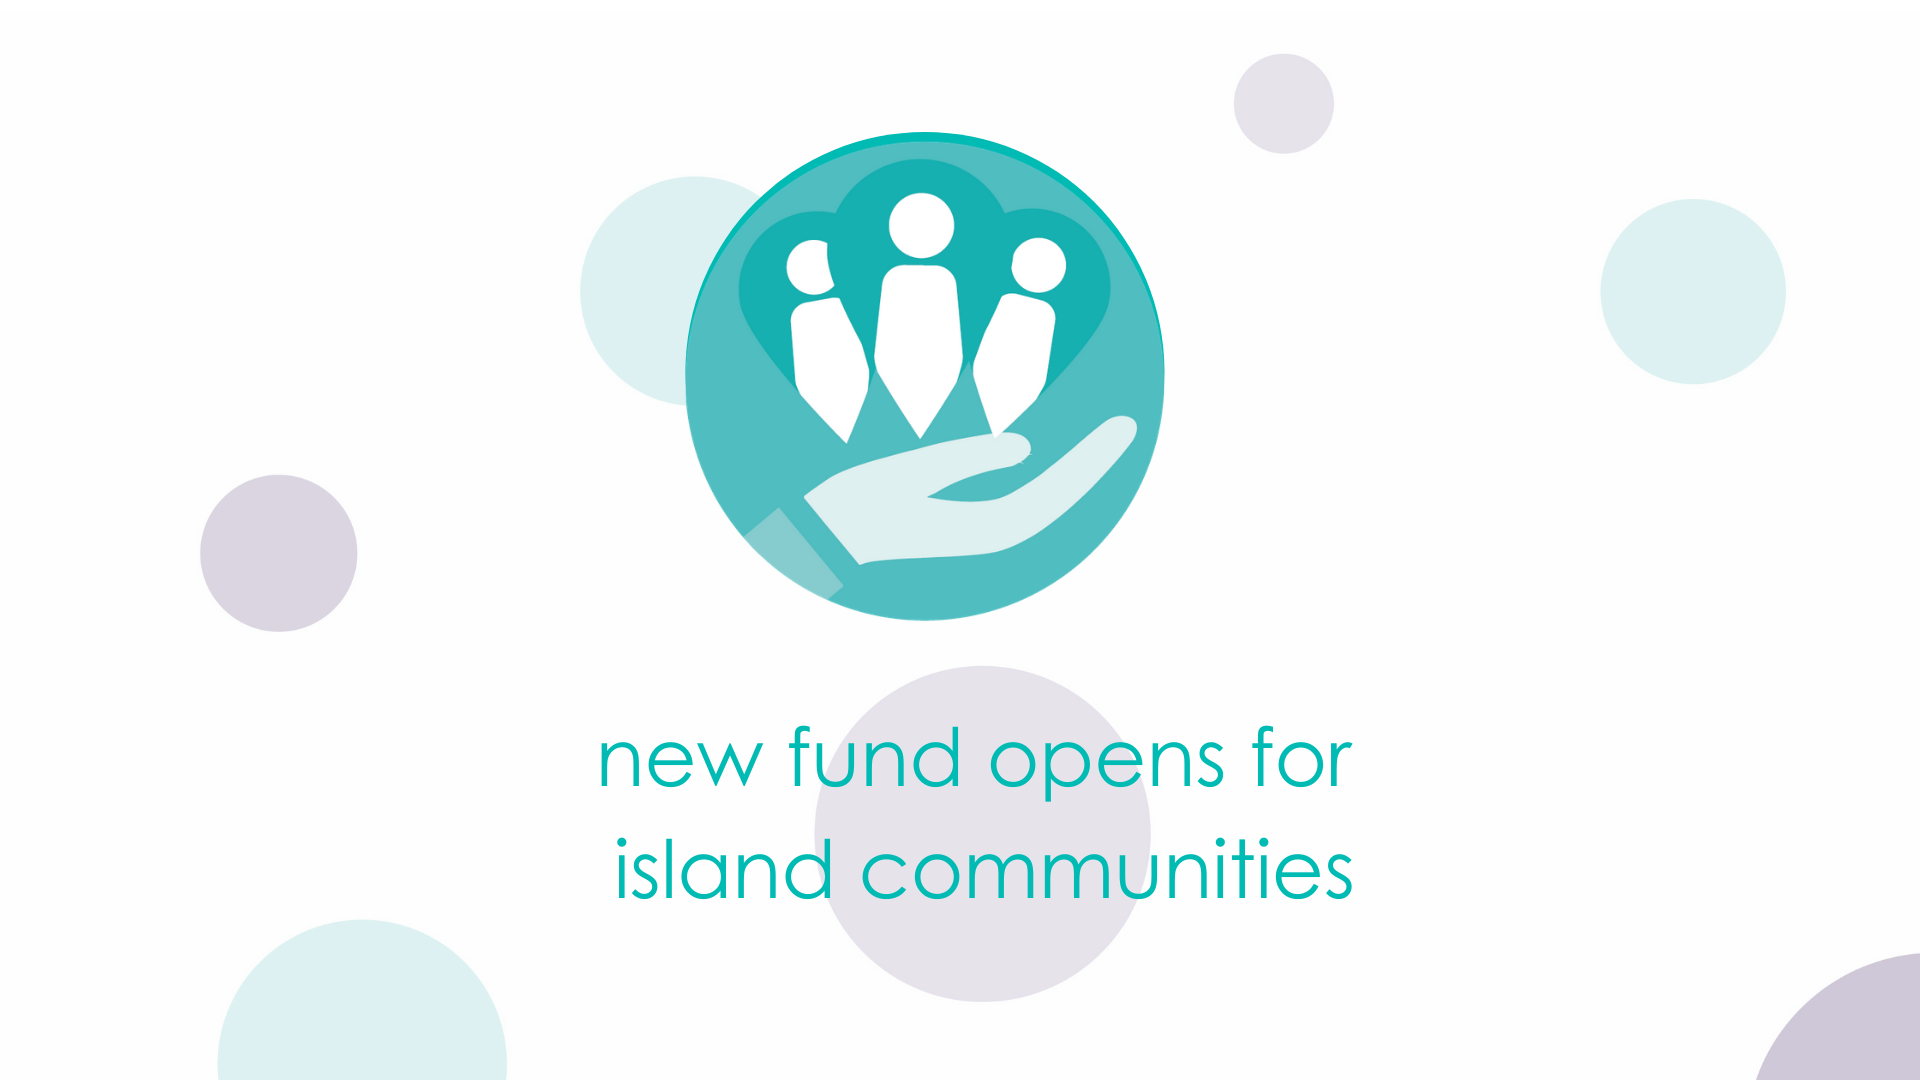 new fund opens for island communities